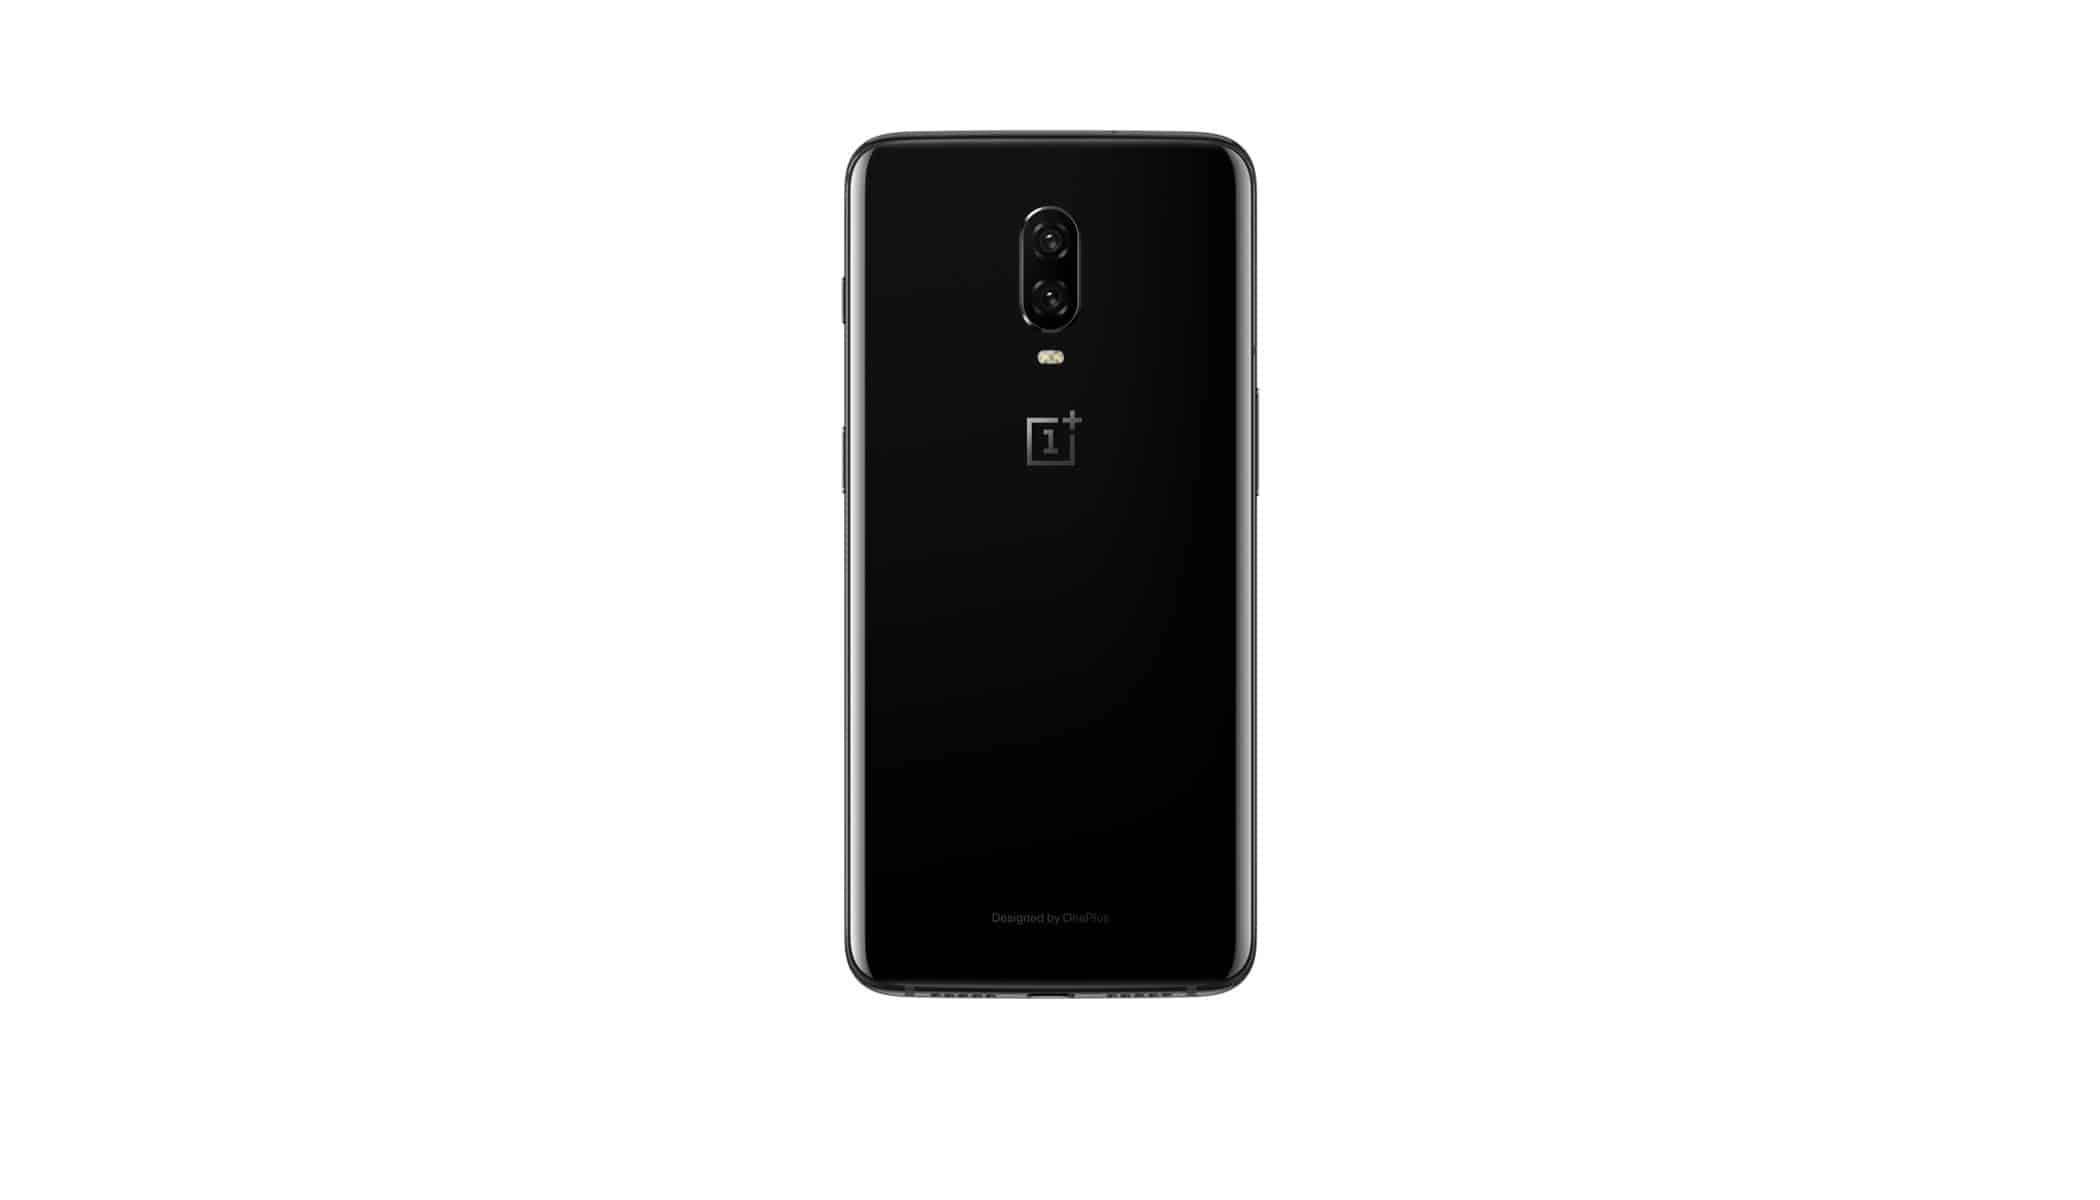 OnePlus 6T Official Product Render 4